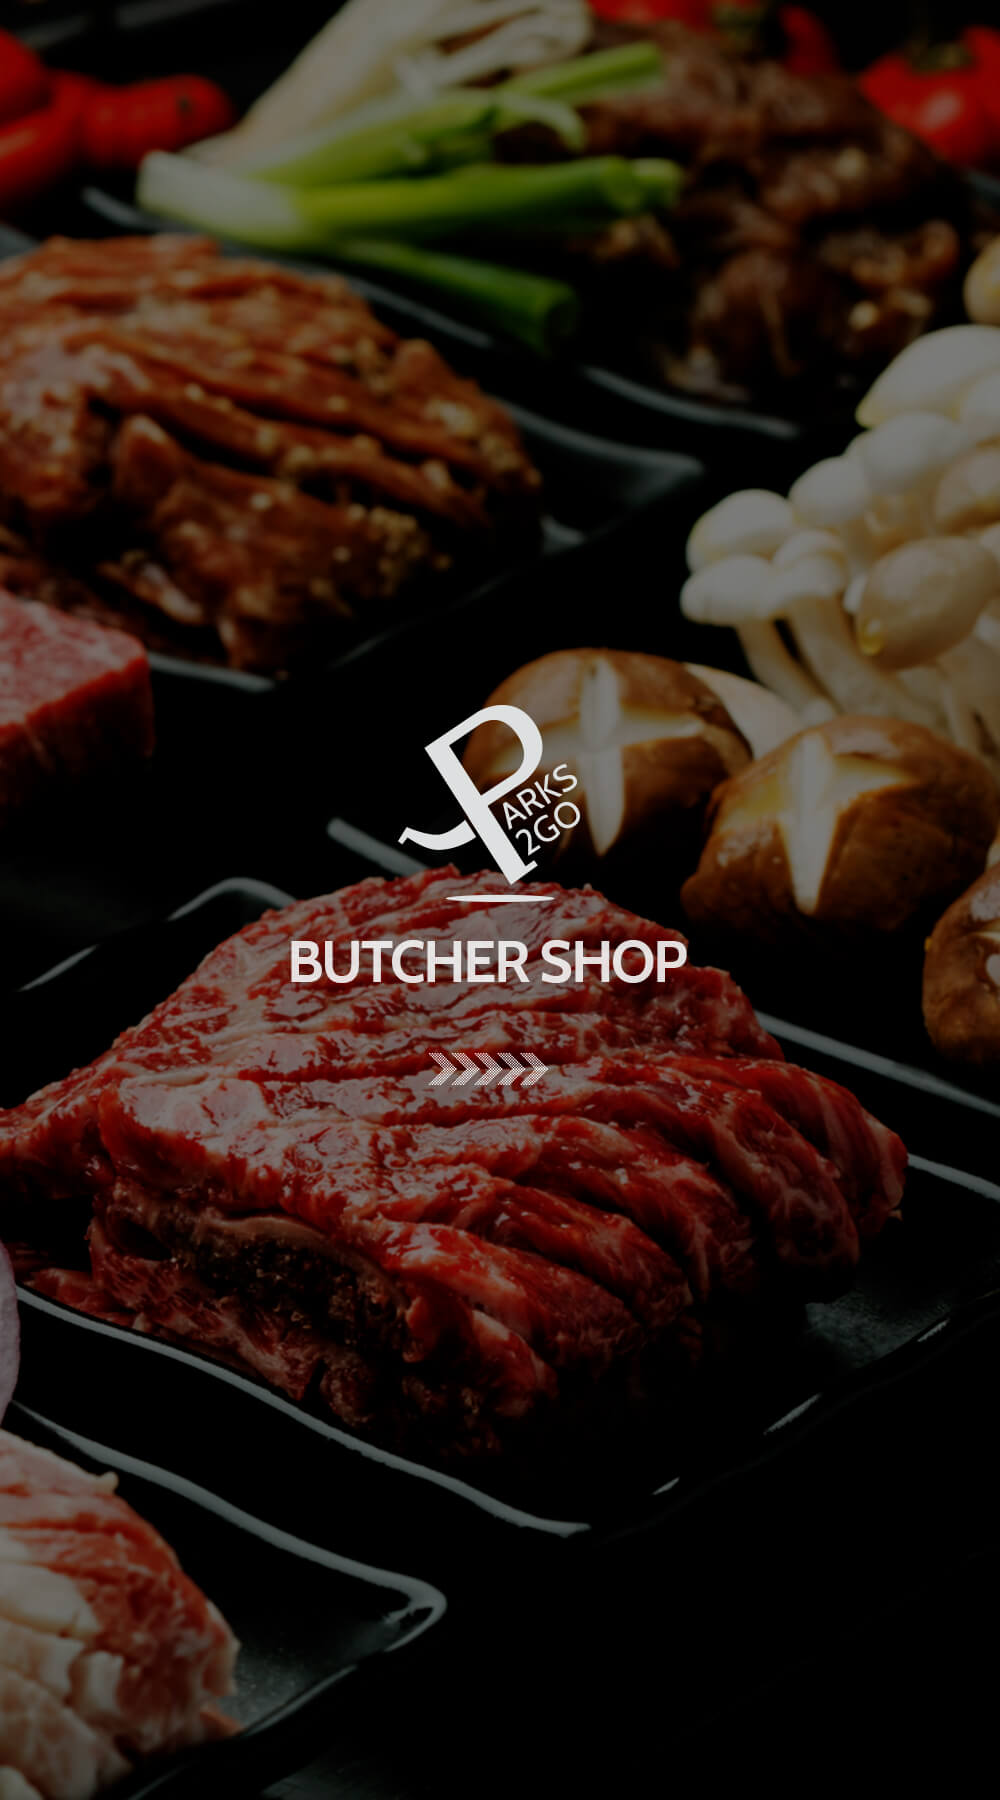 Parks BBQ Butcher Shop Meat with Logo